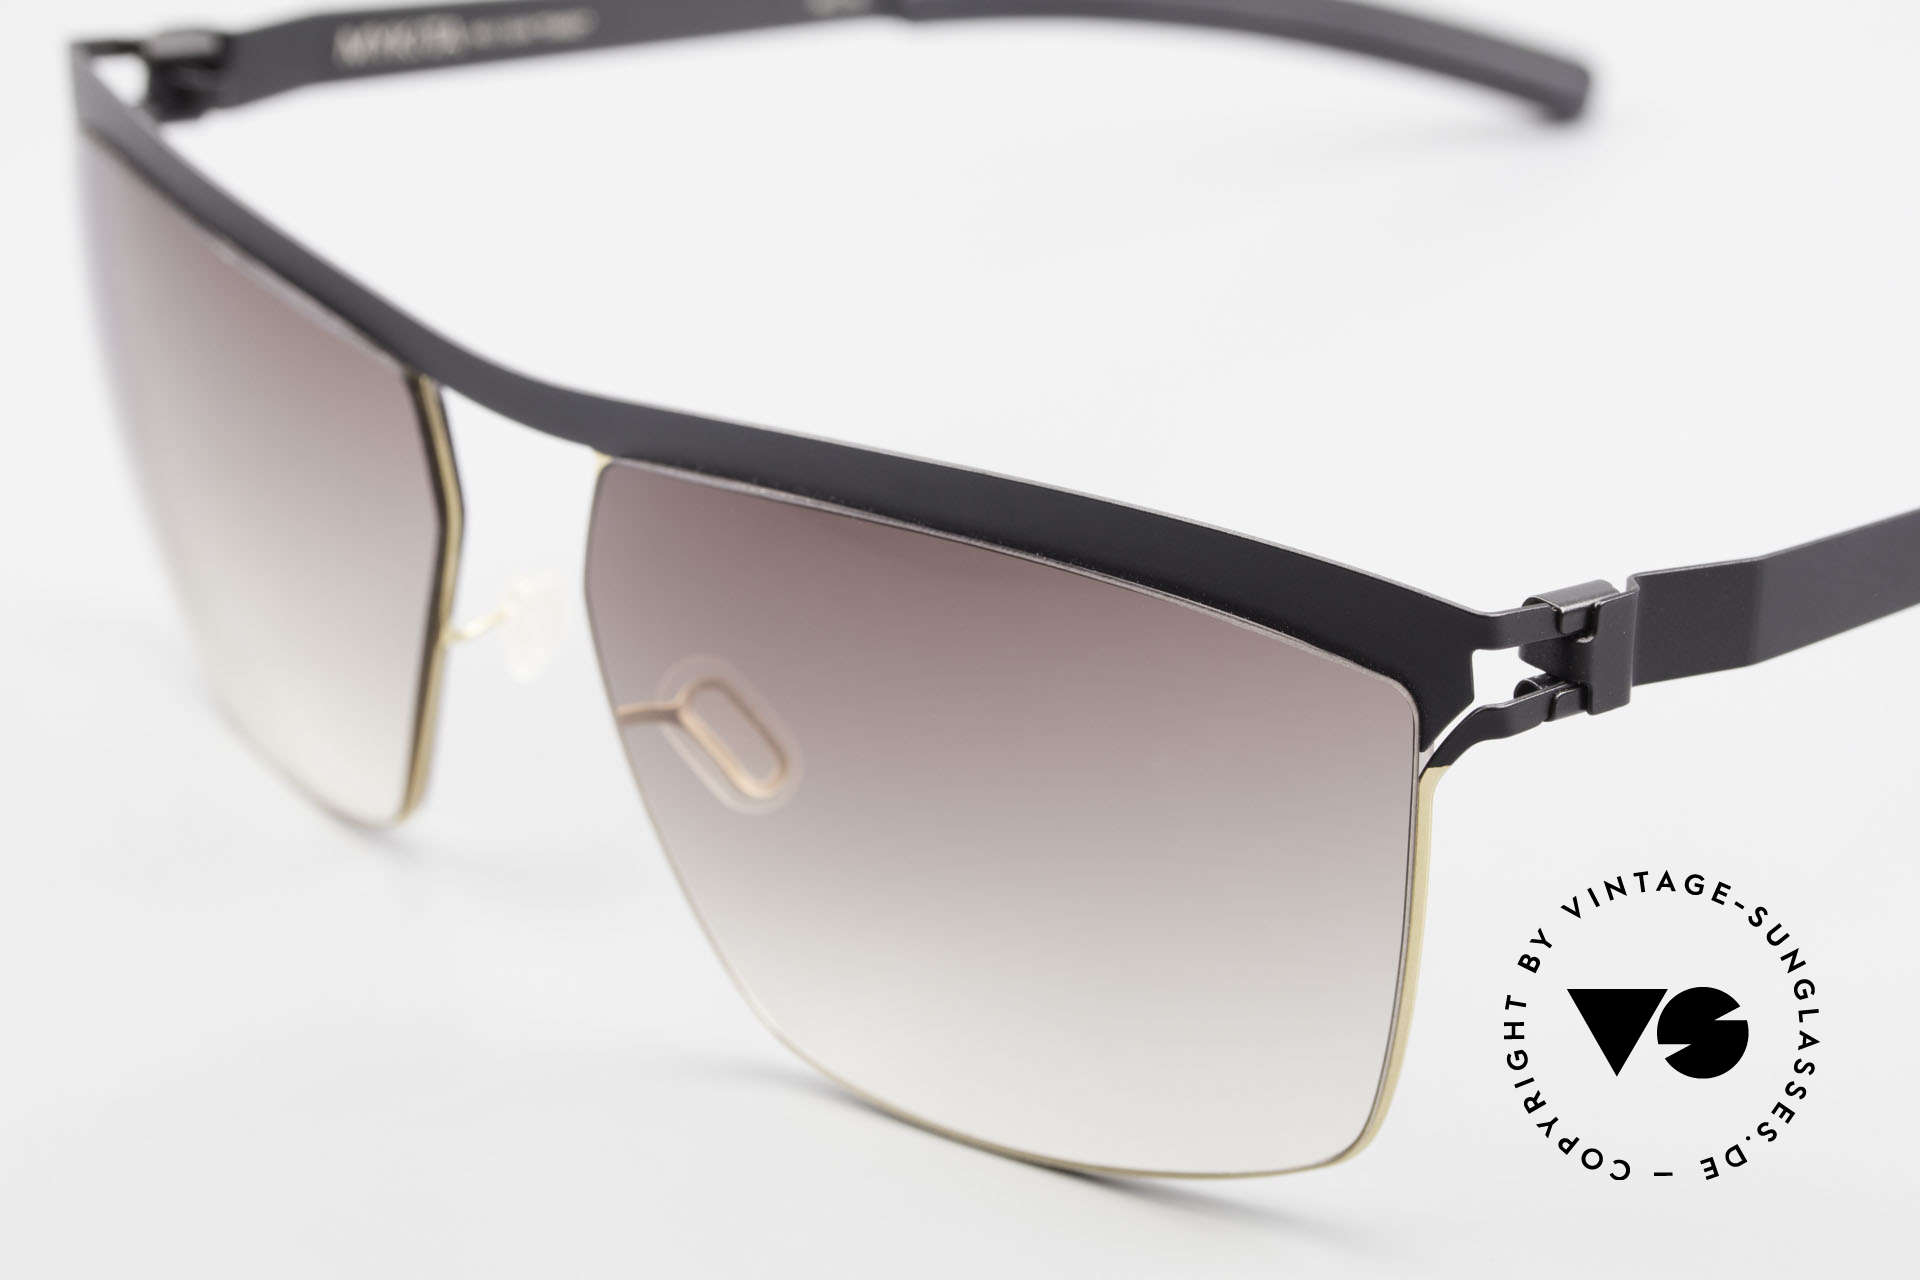 Mykita Tiago Unisex Designer Sunglasses, innovative and flexible metal frame = One size fits all!, Made for Men and Women